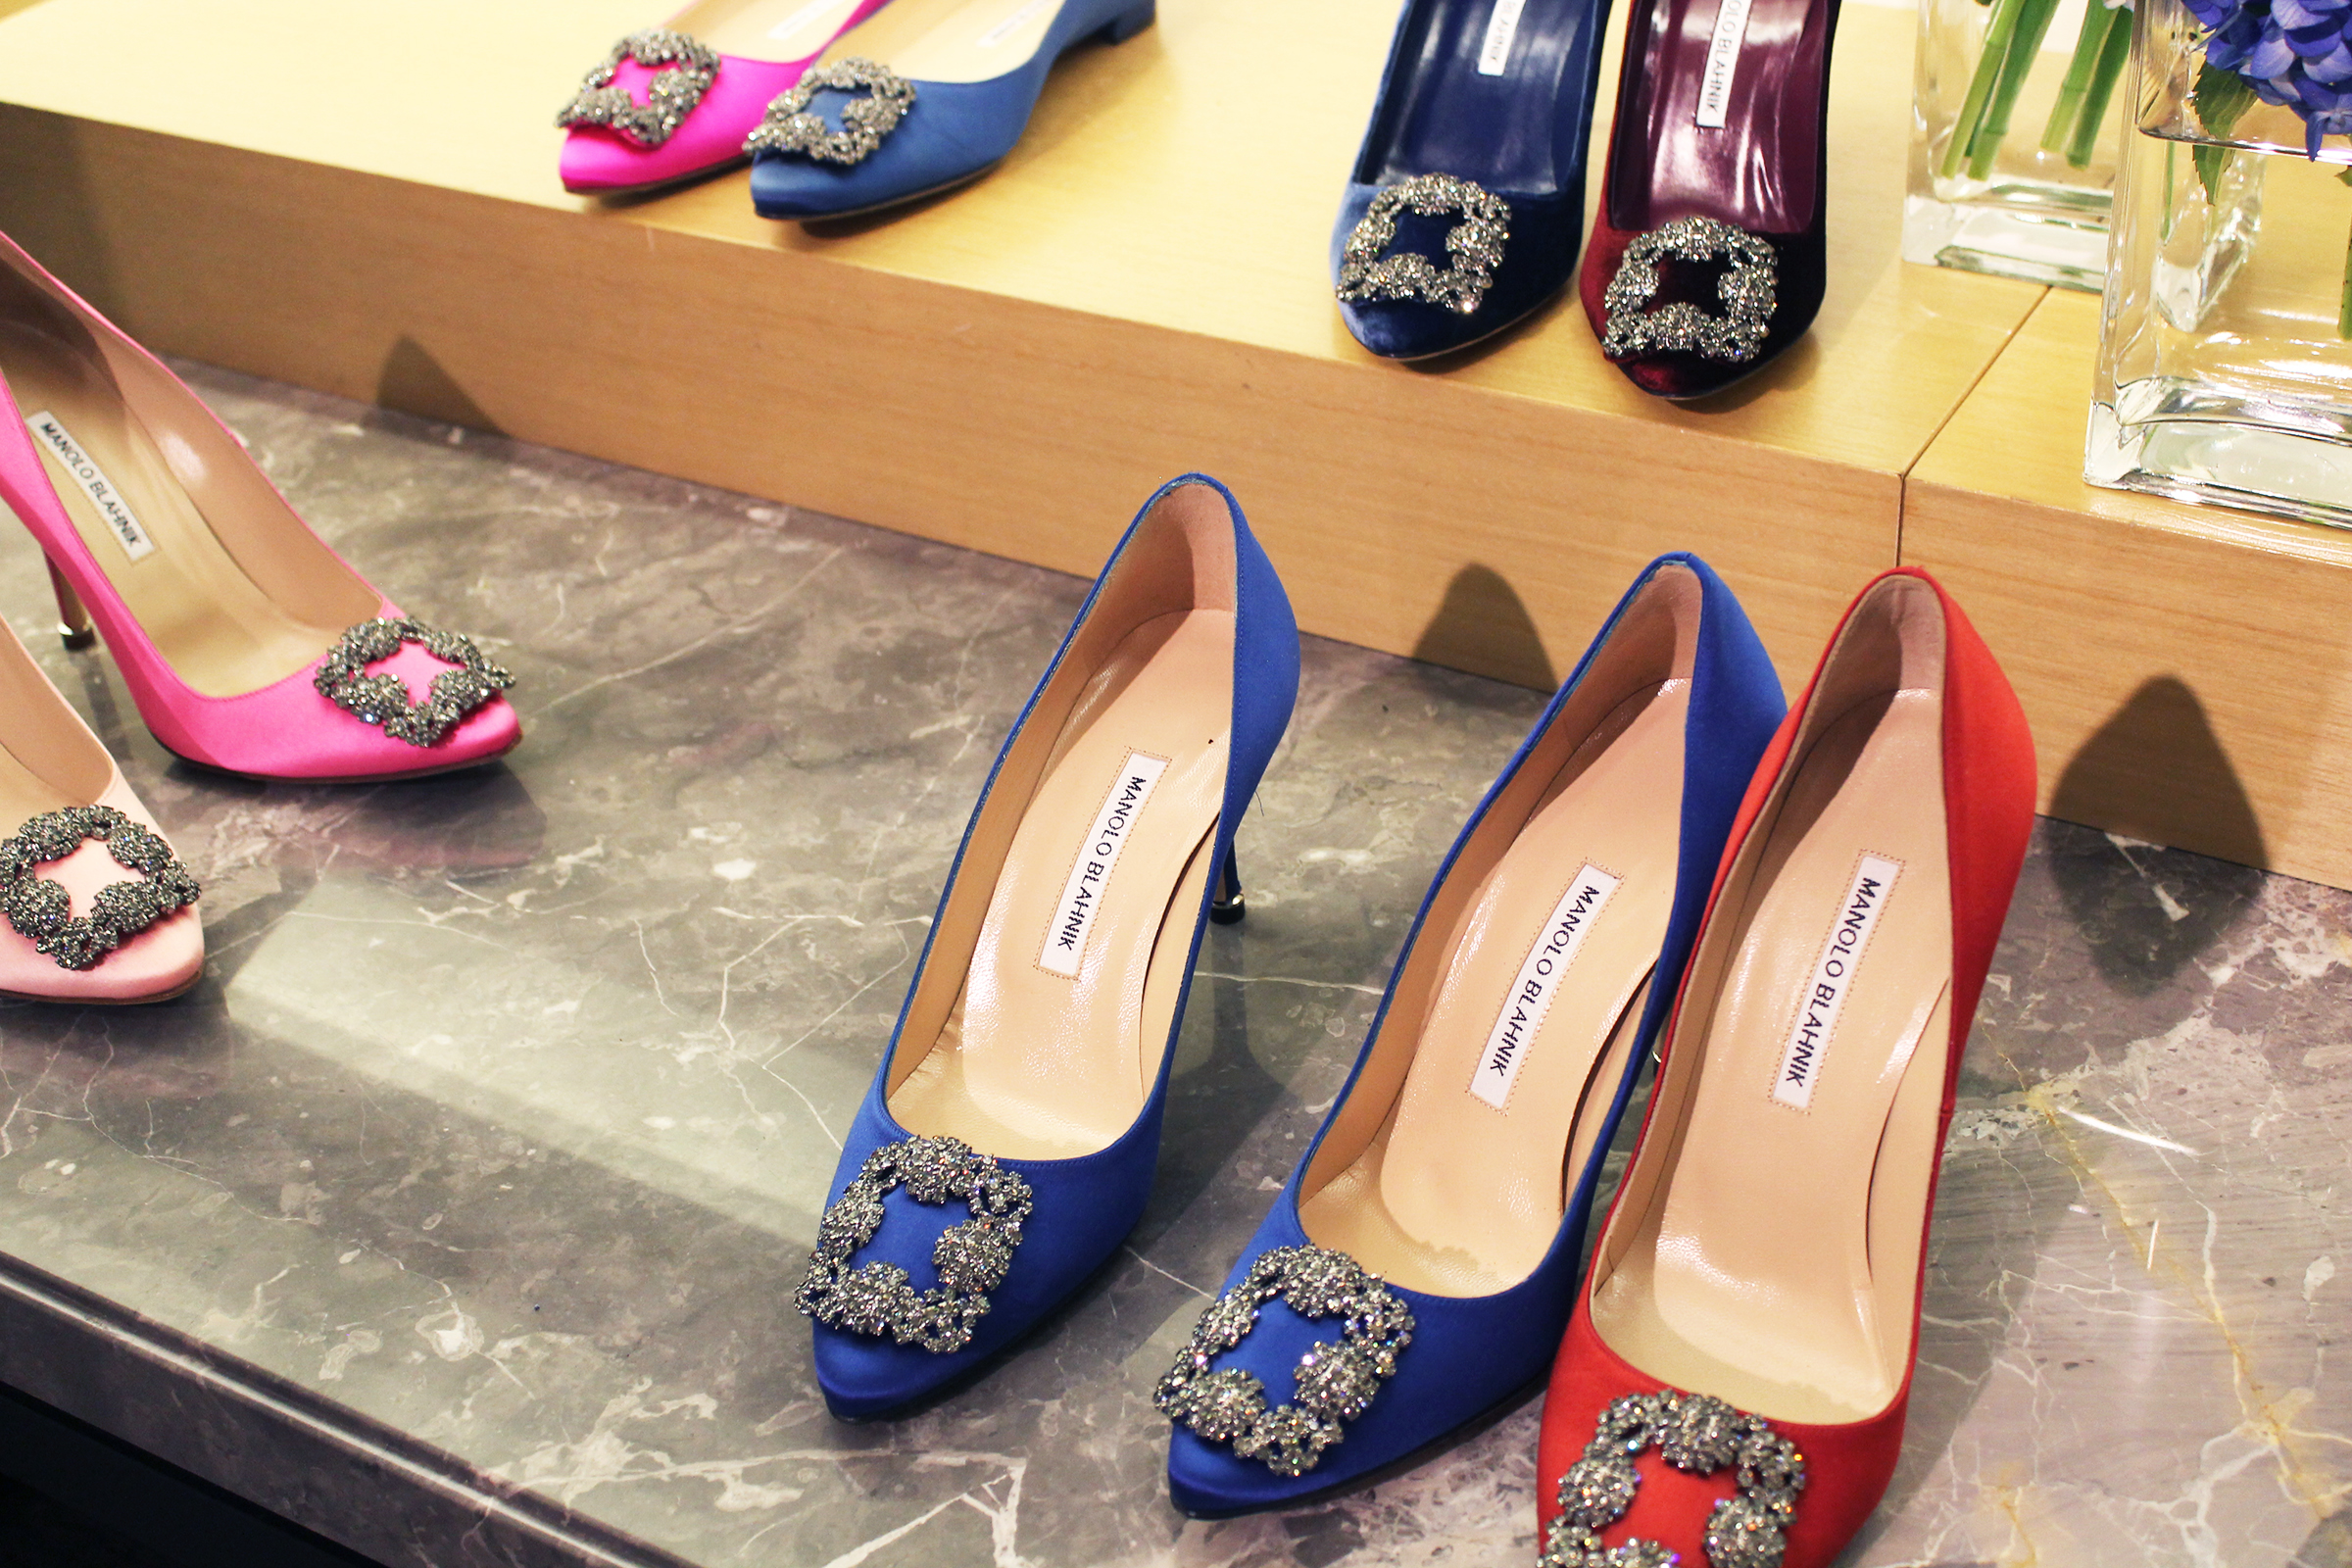 """The famous """"Hangisi"""" shoe from Manolo Blahnik"""